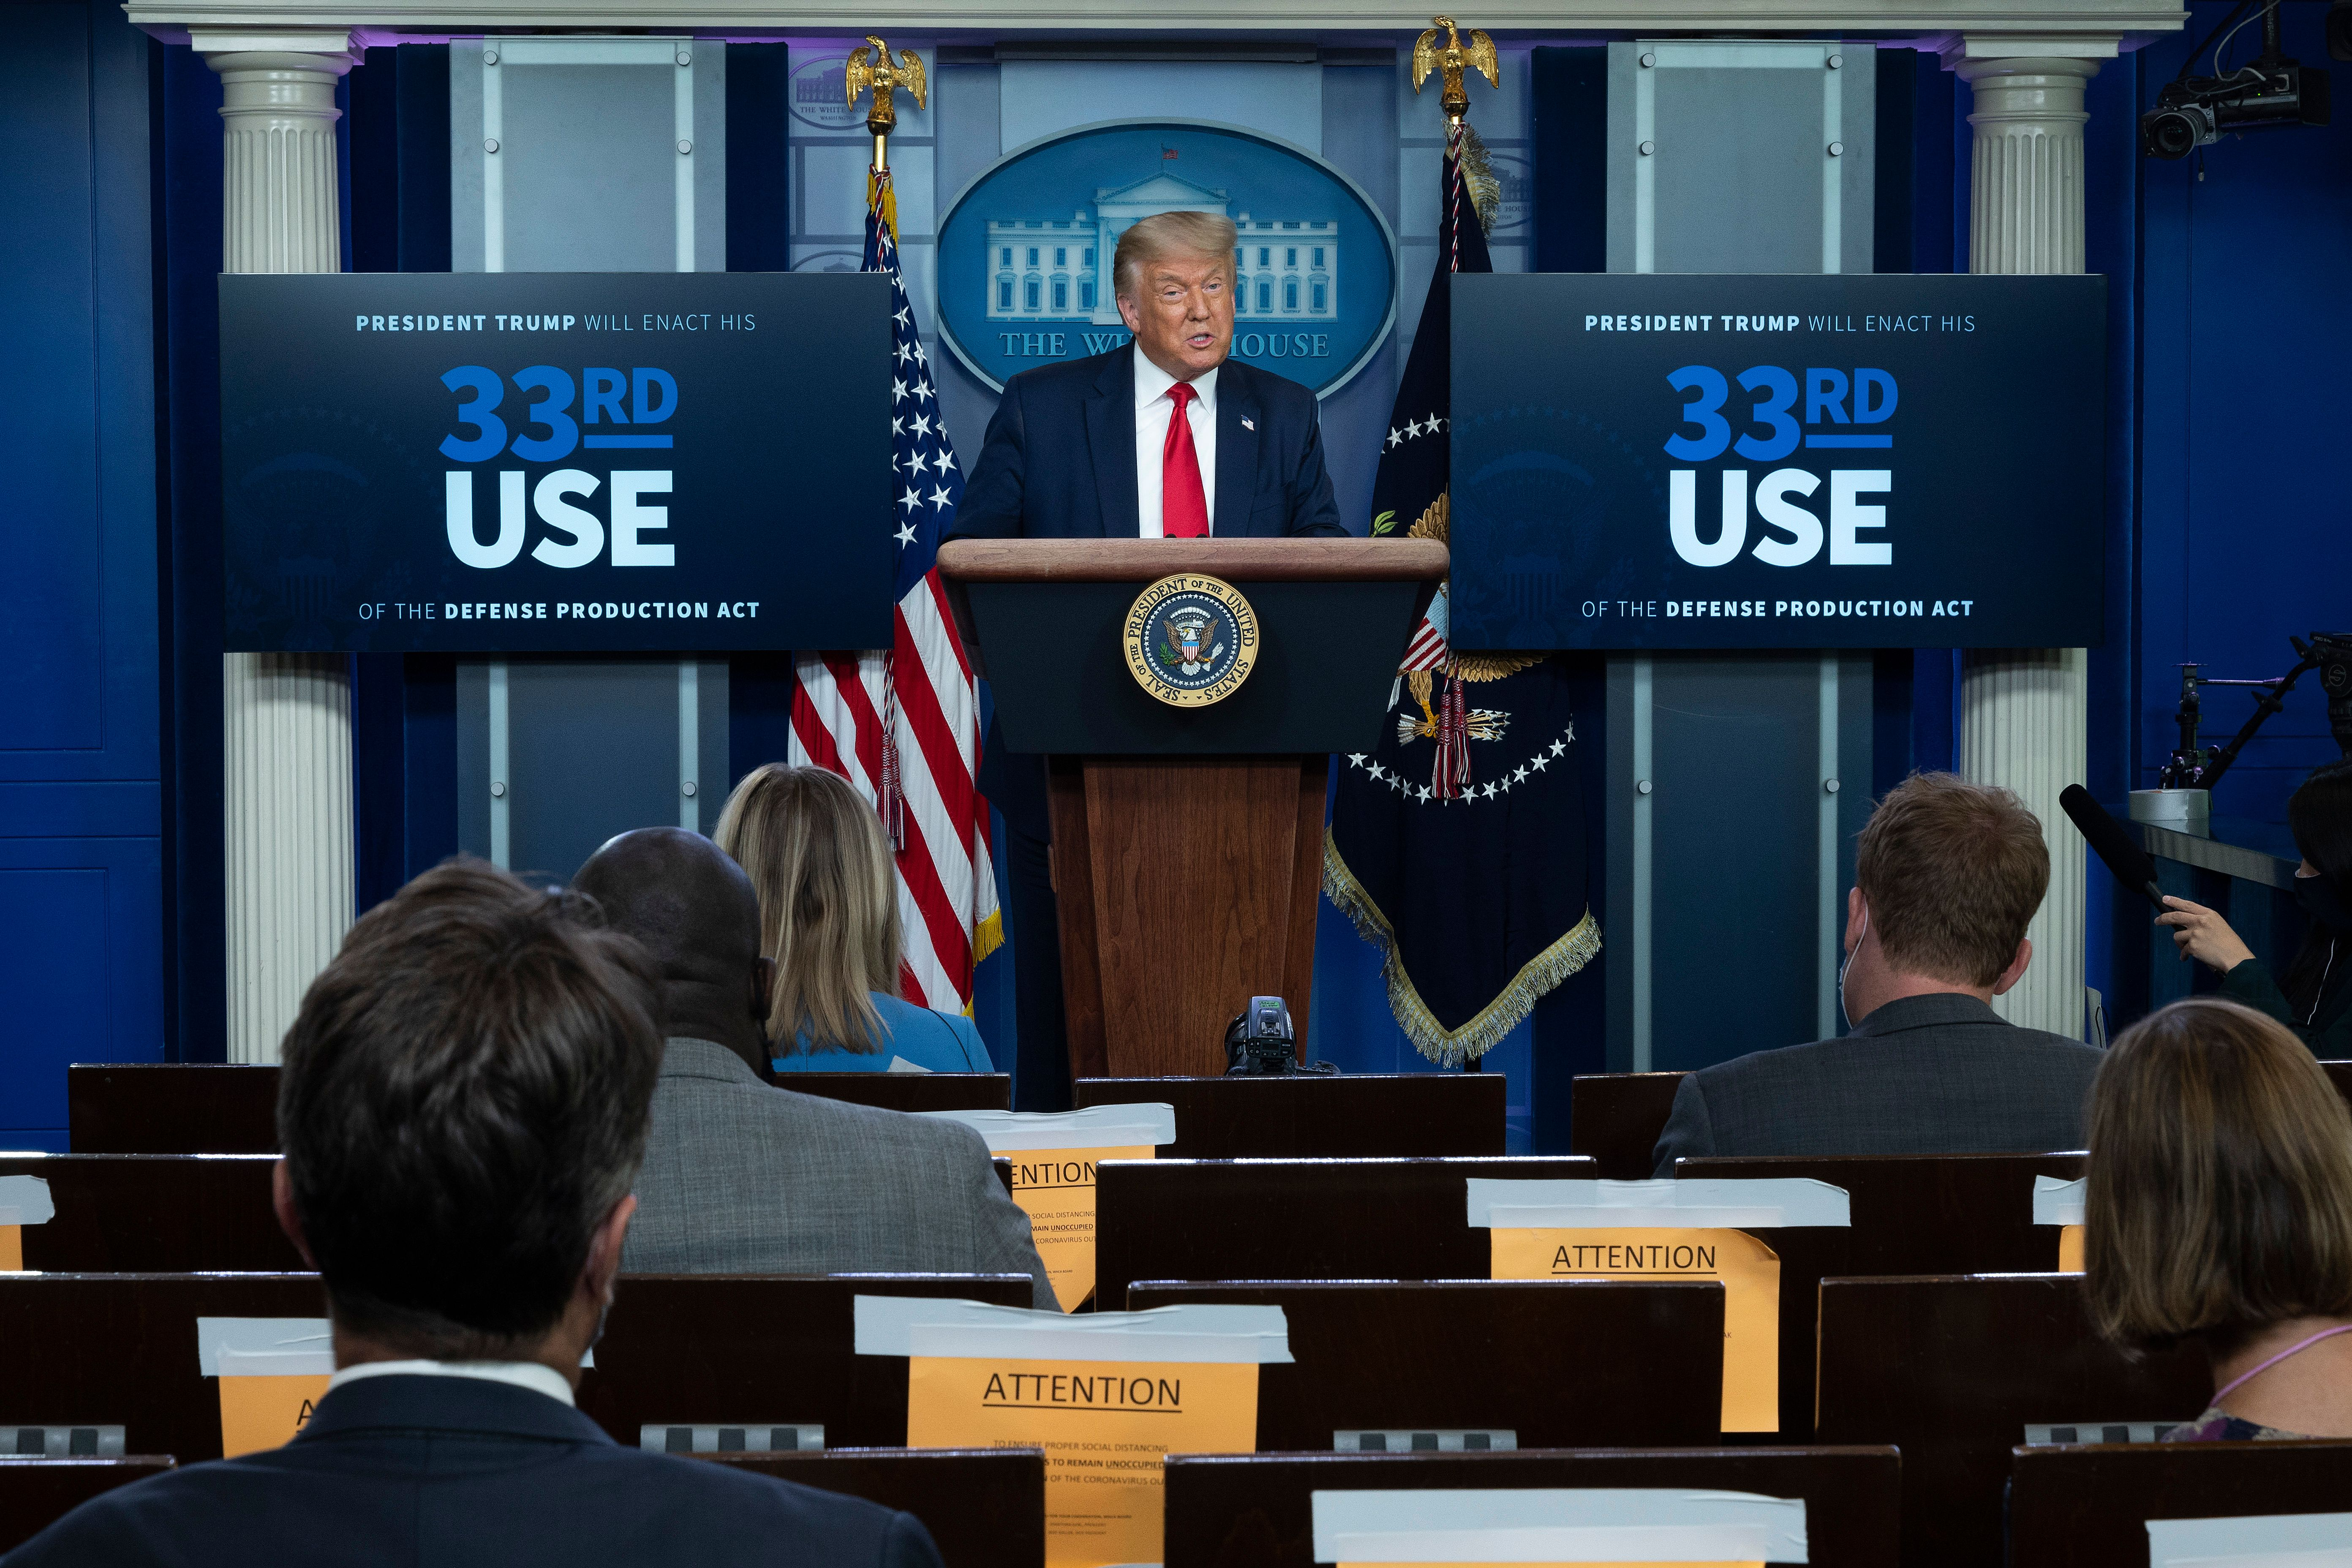 US President Donald Trump speaks to the press in the Brady Briefing Room of the White House in Washington, DC, on July 28, 2020. (Photo by JIM WATSON/AFP via Getty Images)